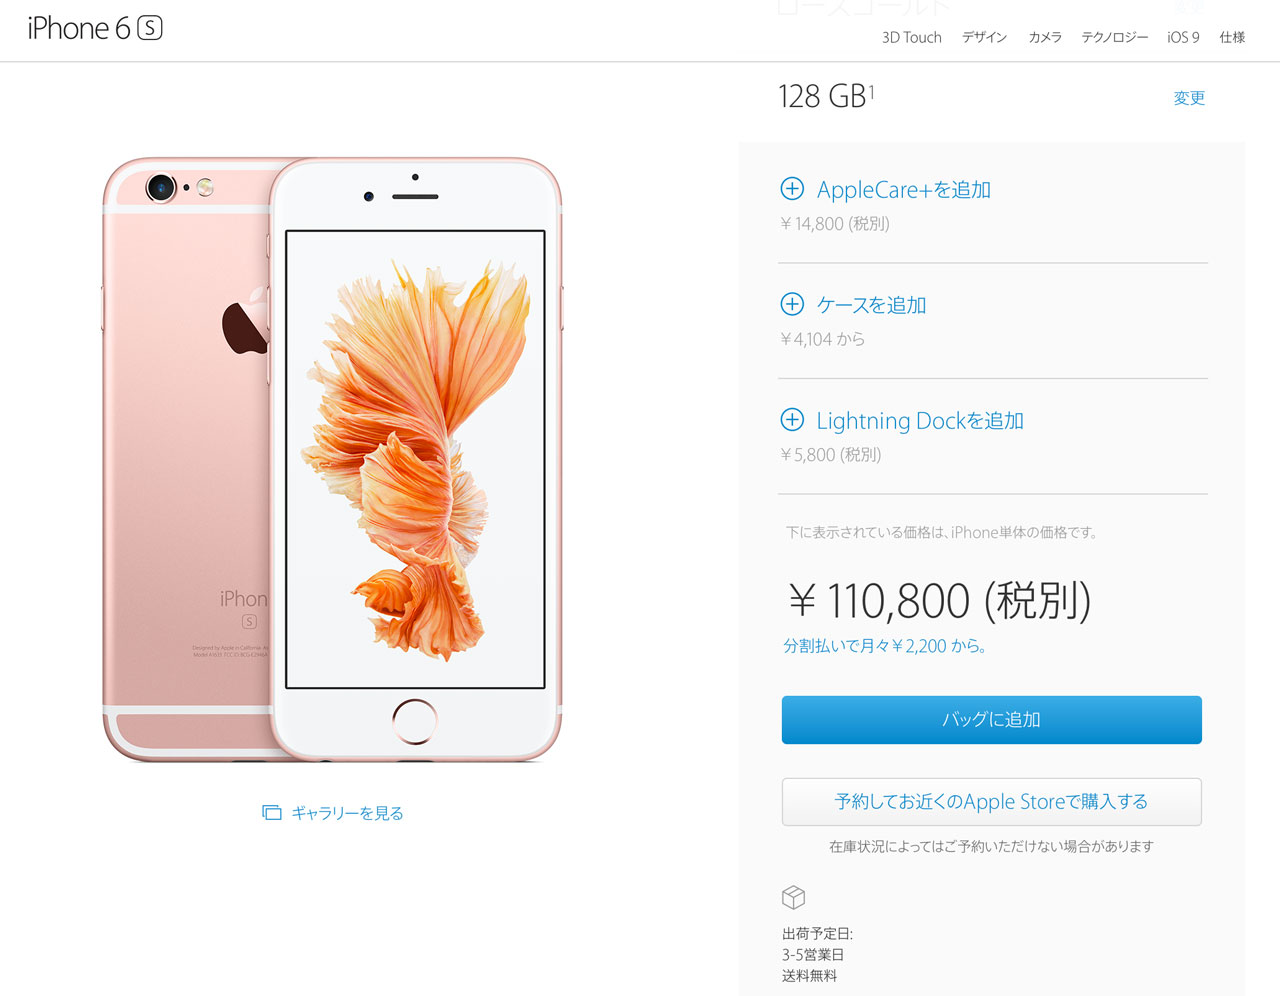 apple online store iPhone 6s shipment in 3 to 5 days